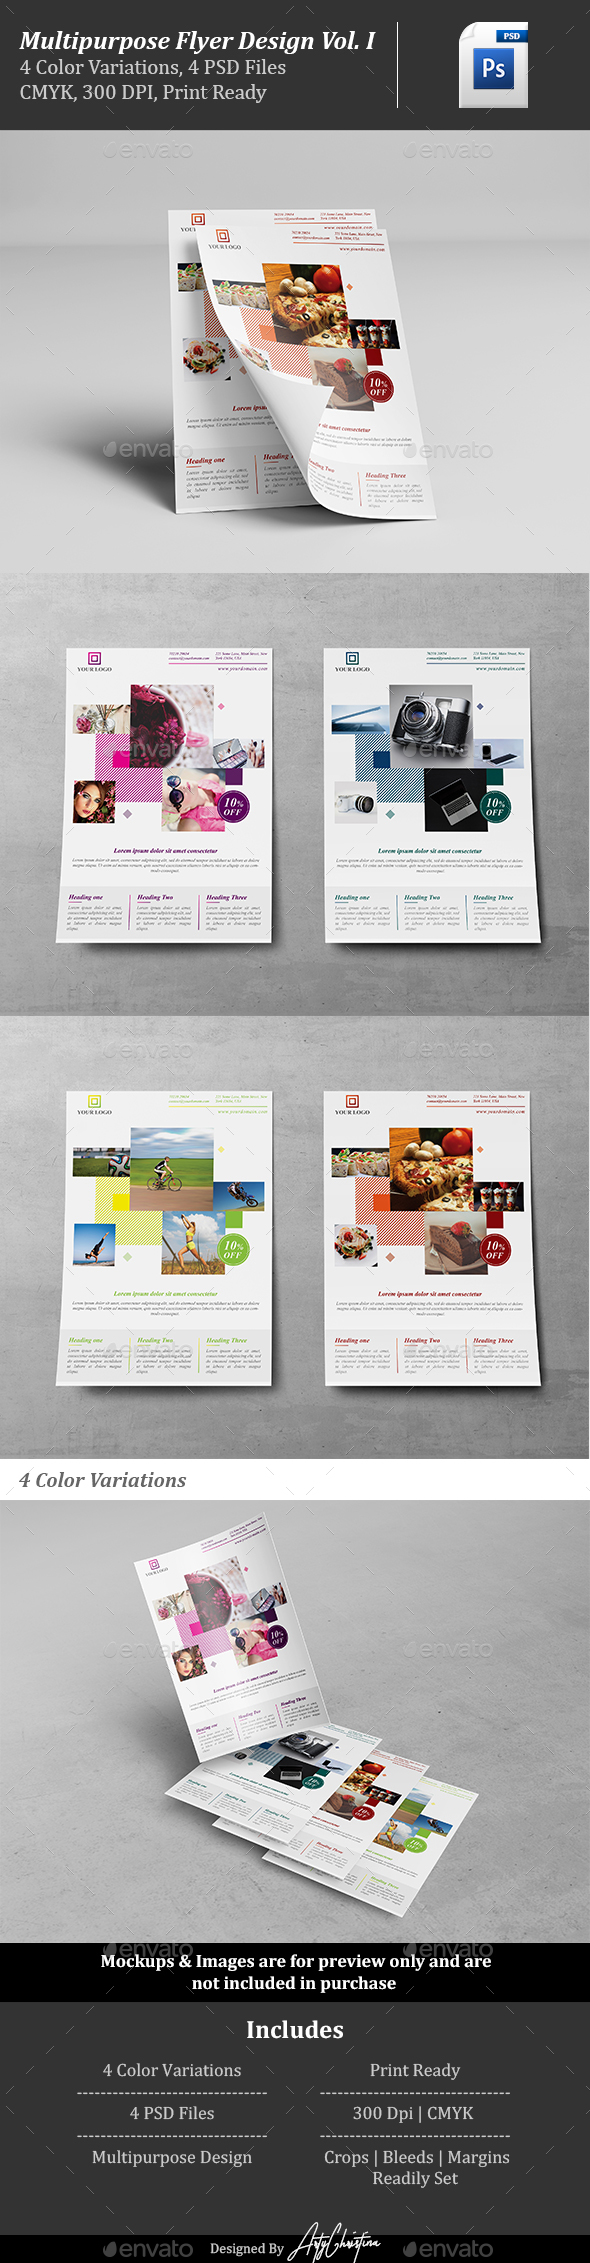 Multipurpose Flyer Design Vol. 1 - Flyers Print Templates